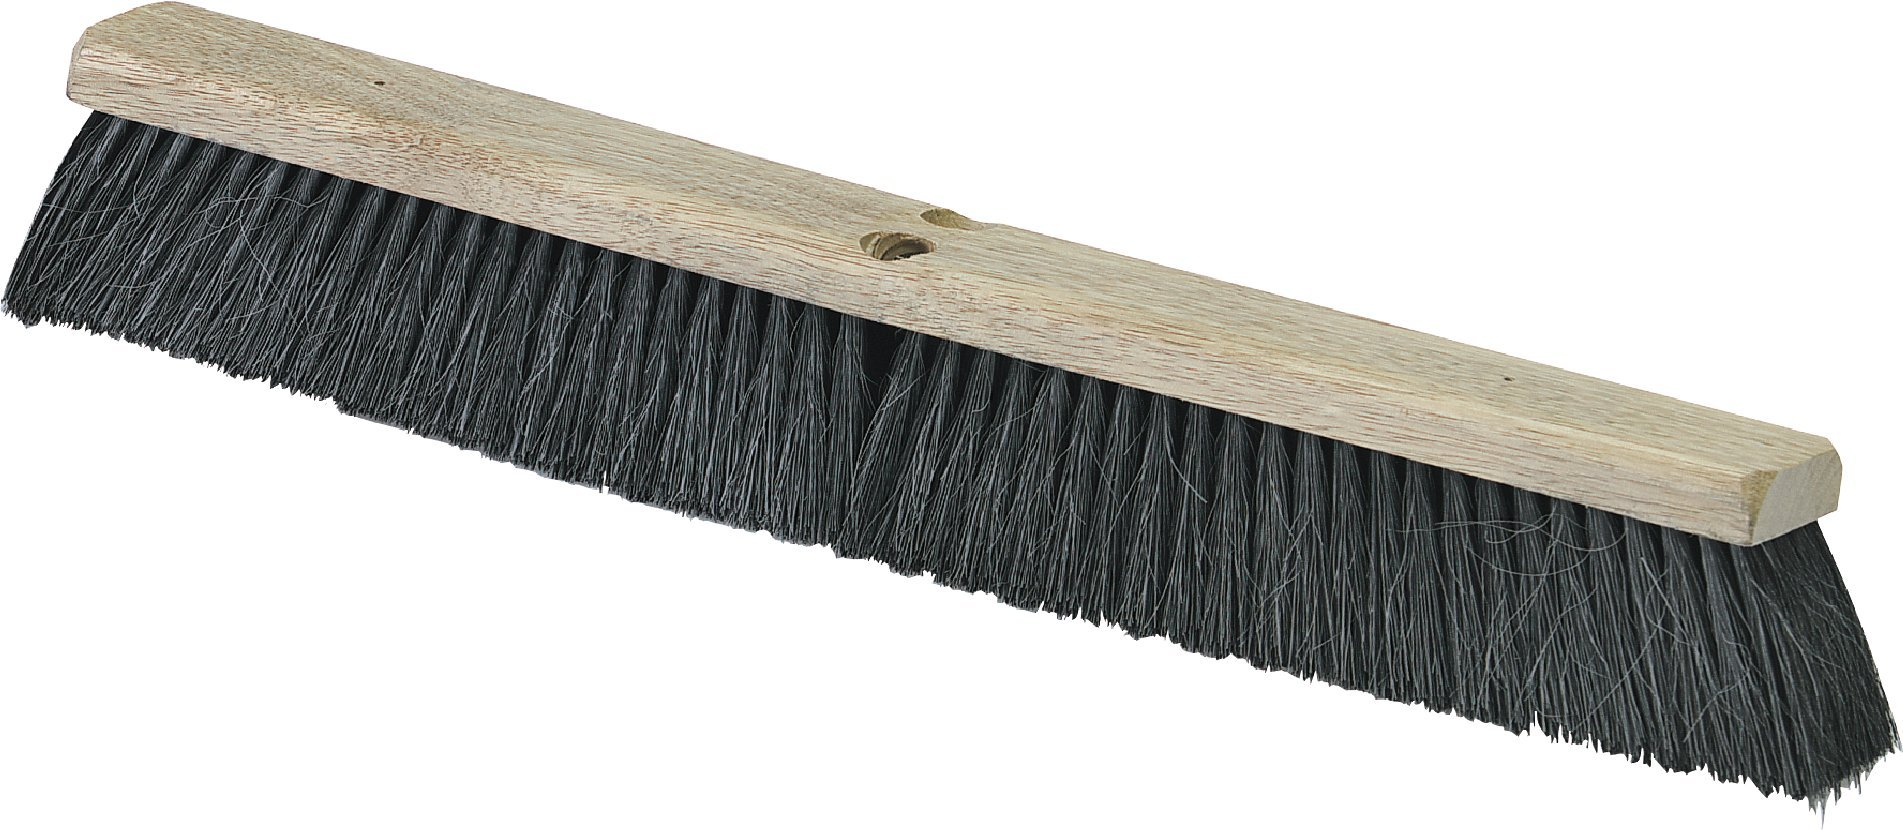 Carlisle 4504303 Flo-Pac Fine/Medium Floor Sweep, 36''-Long Hardwood Block, 3''-Long Black Blended Horsehair/Tampico Bristles (Case of 6) by Carlisle